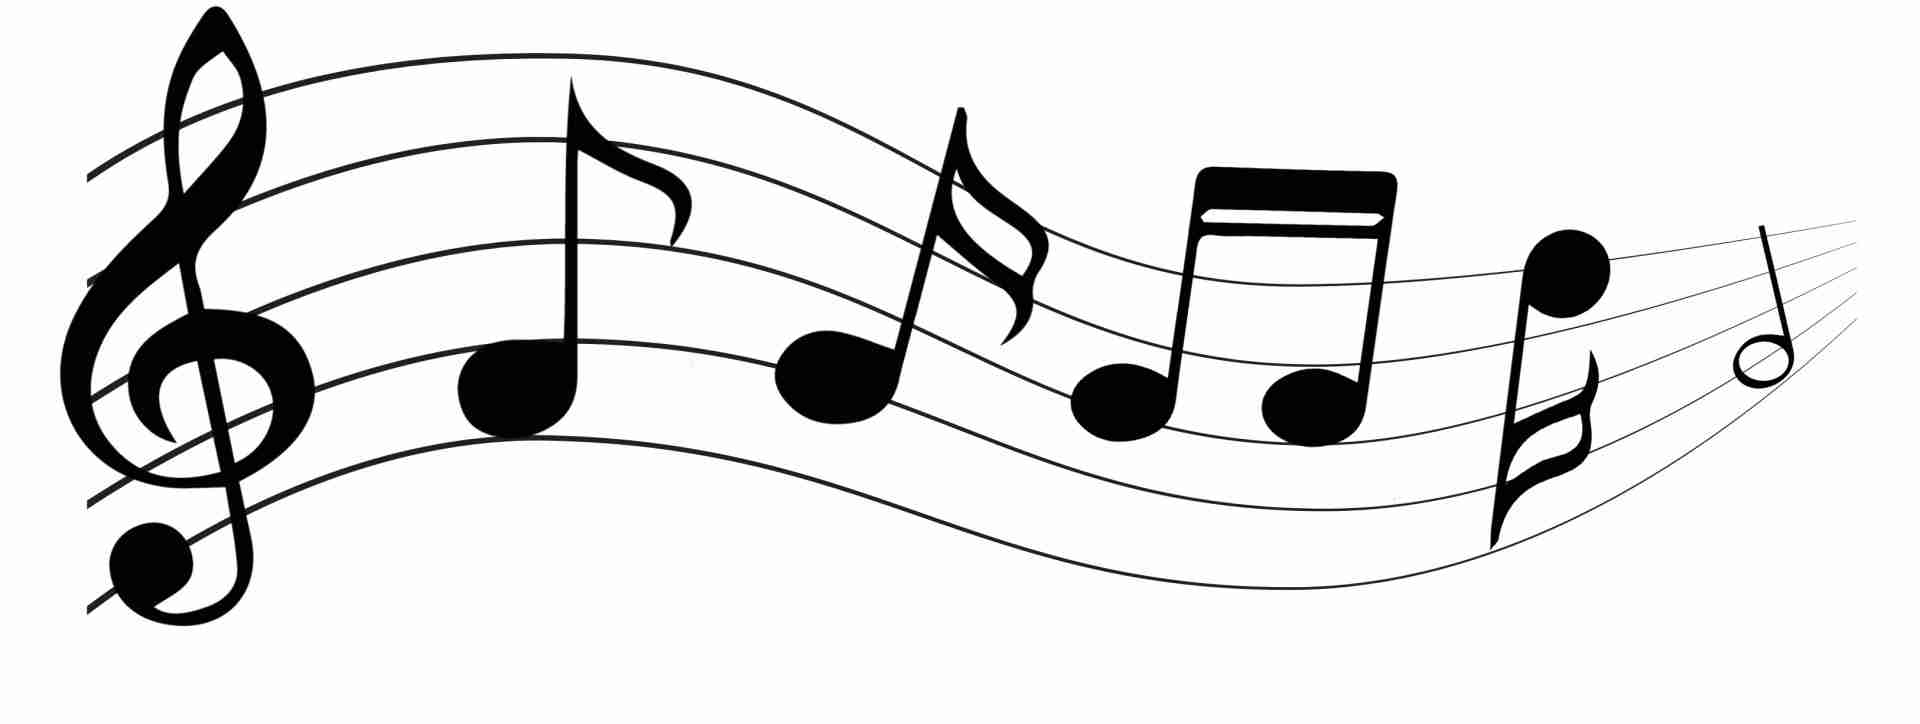 1920x724 Amazon Com Musical Notes Silhouette Toys Games Adorable Music